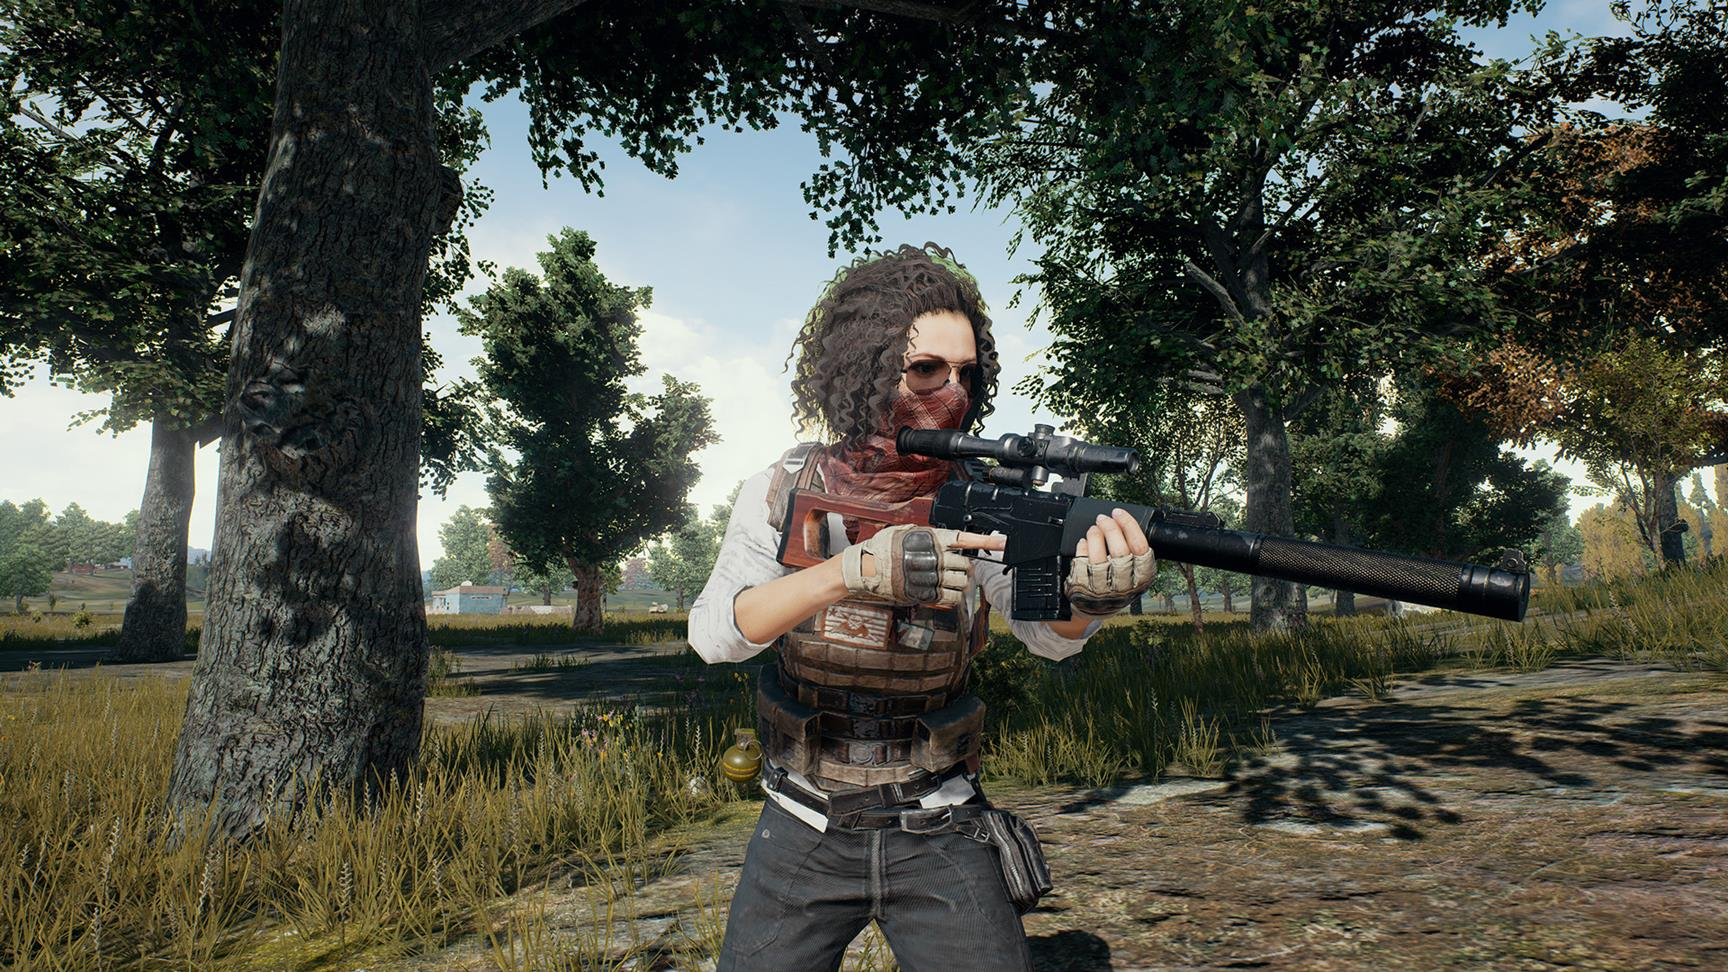 PlayerUnknown's Battlegrounds is close to hitting 2 million concurrent players on Steam